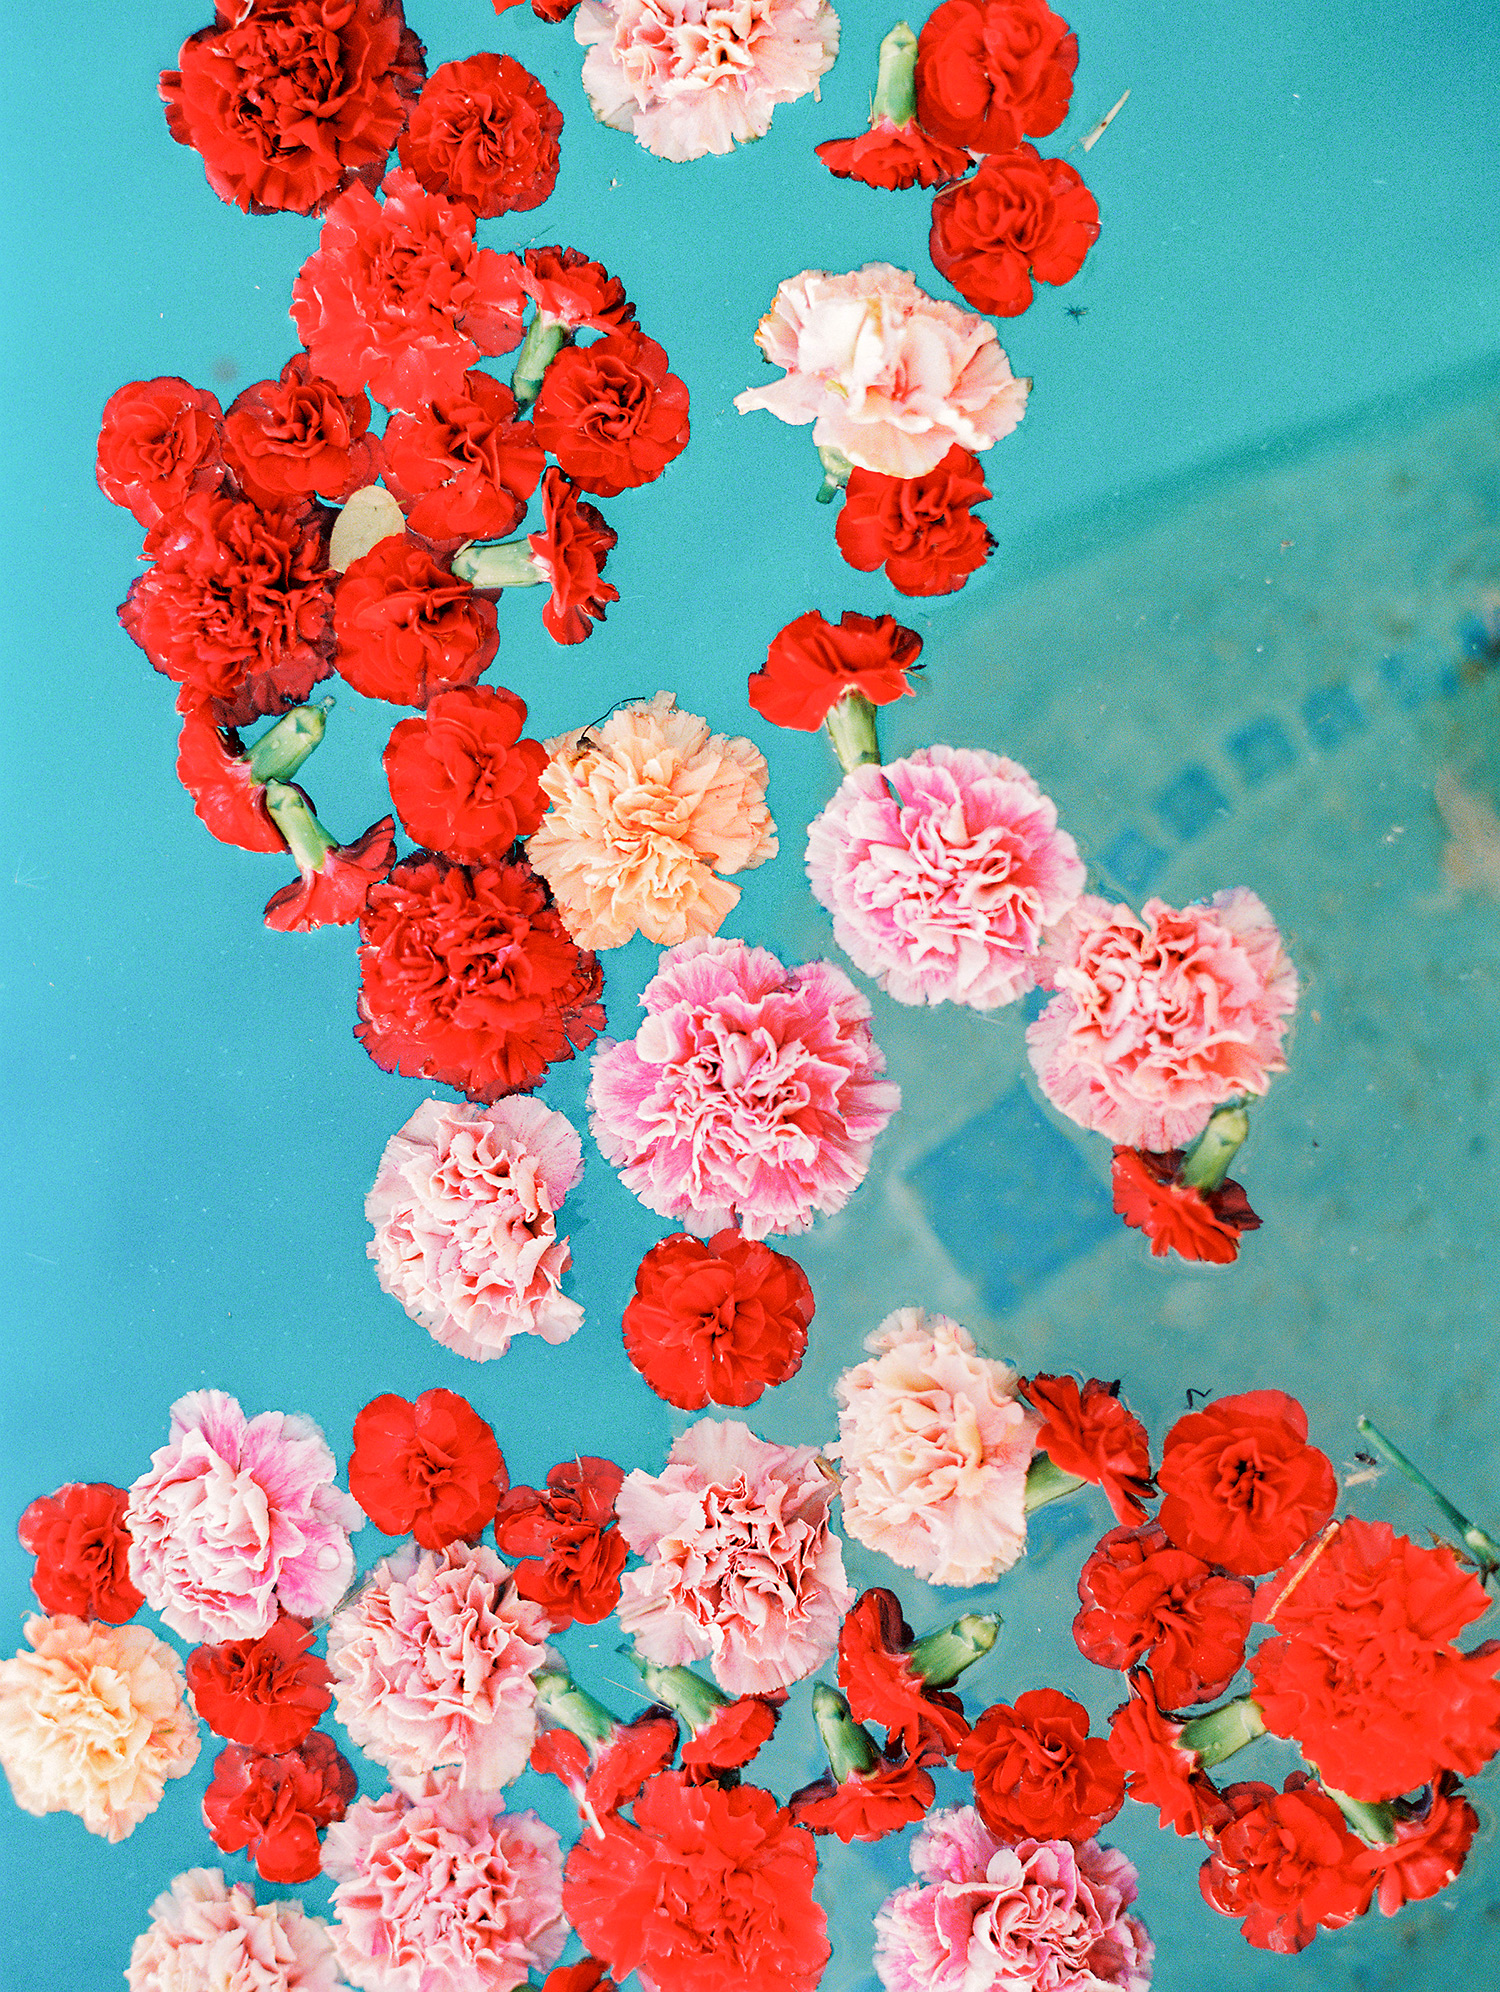 caitlin amit indian wedding flowers floating in pool